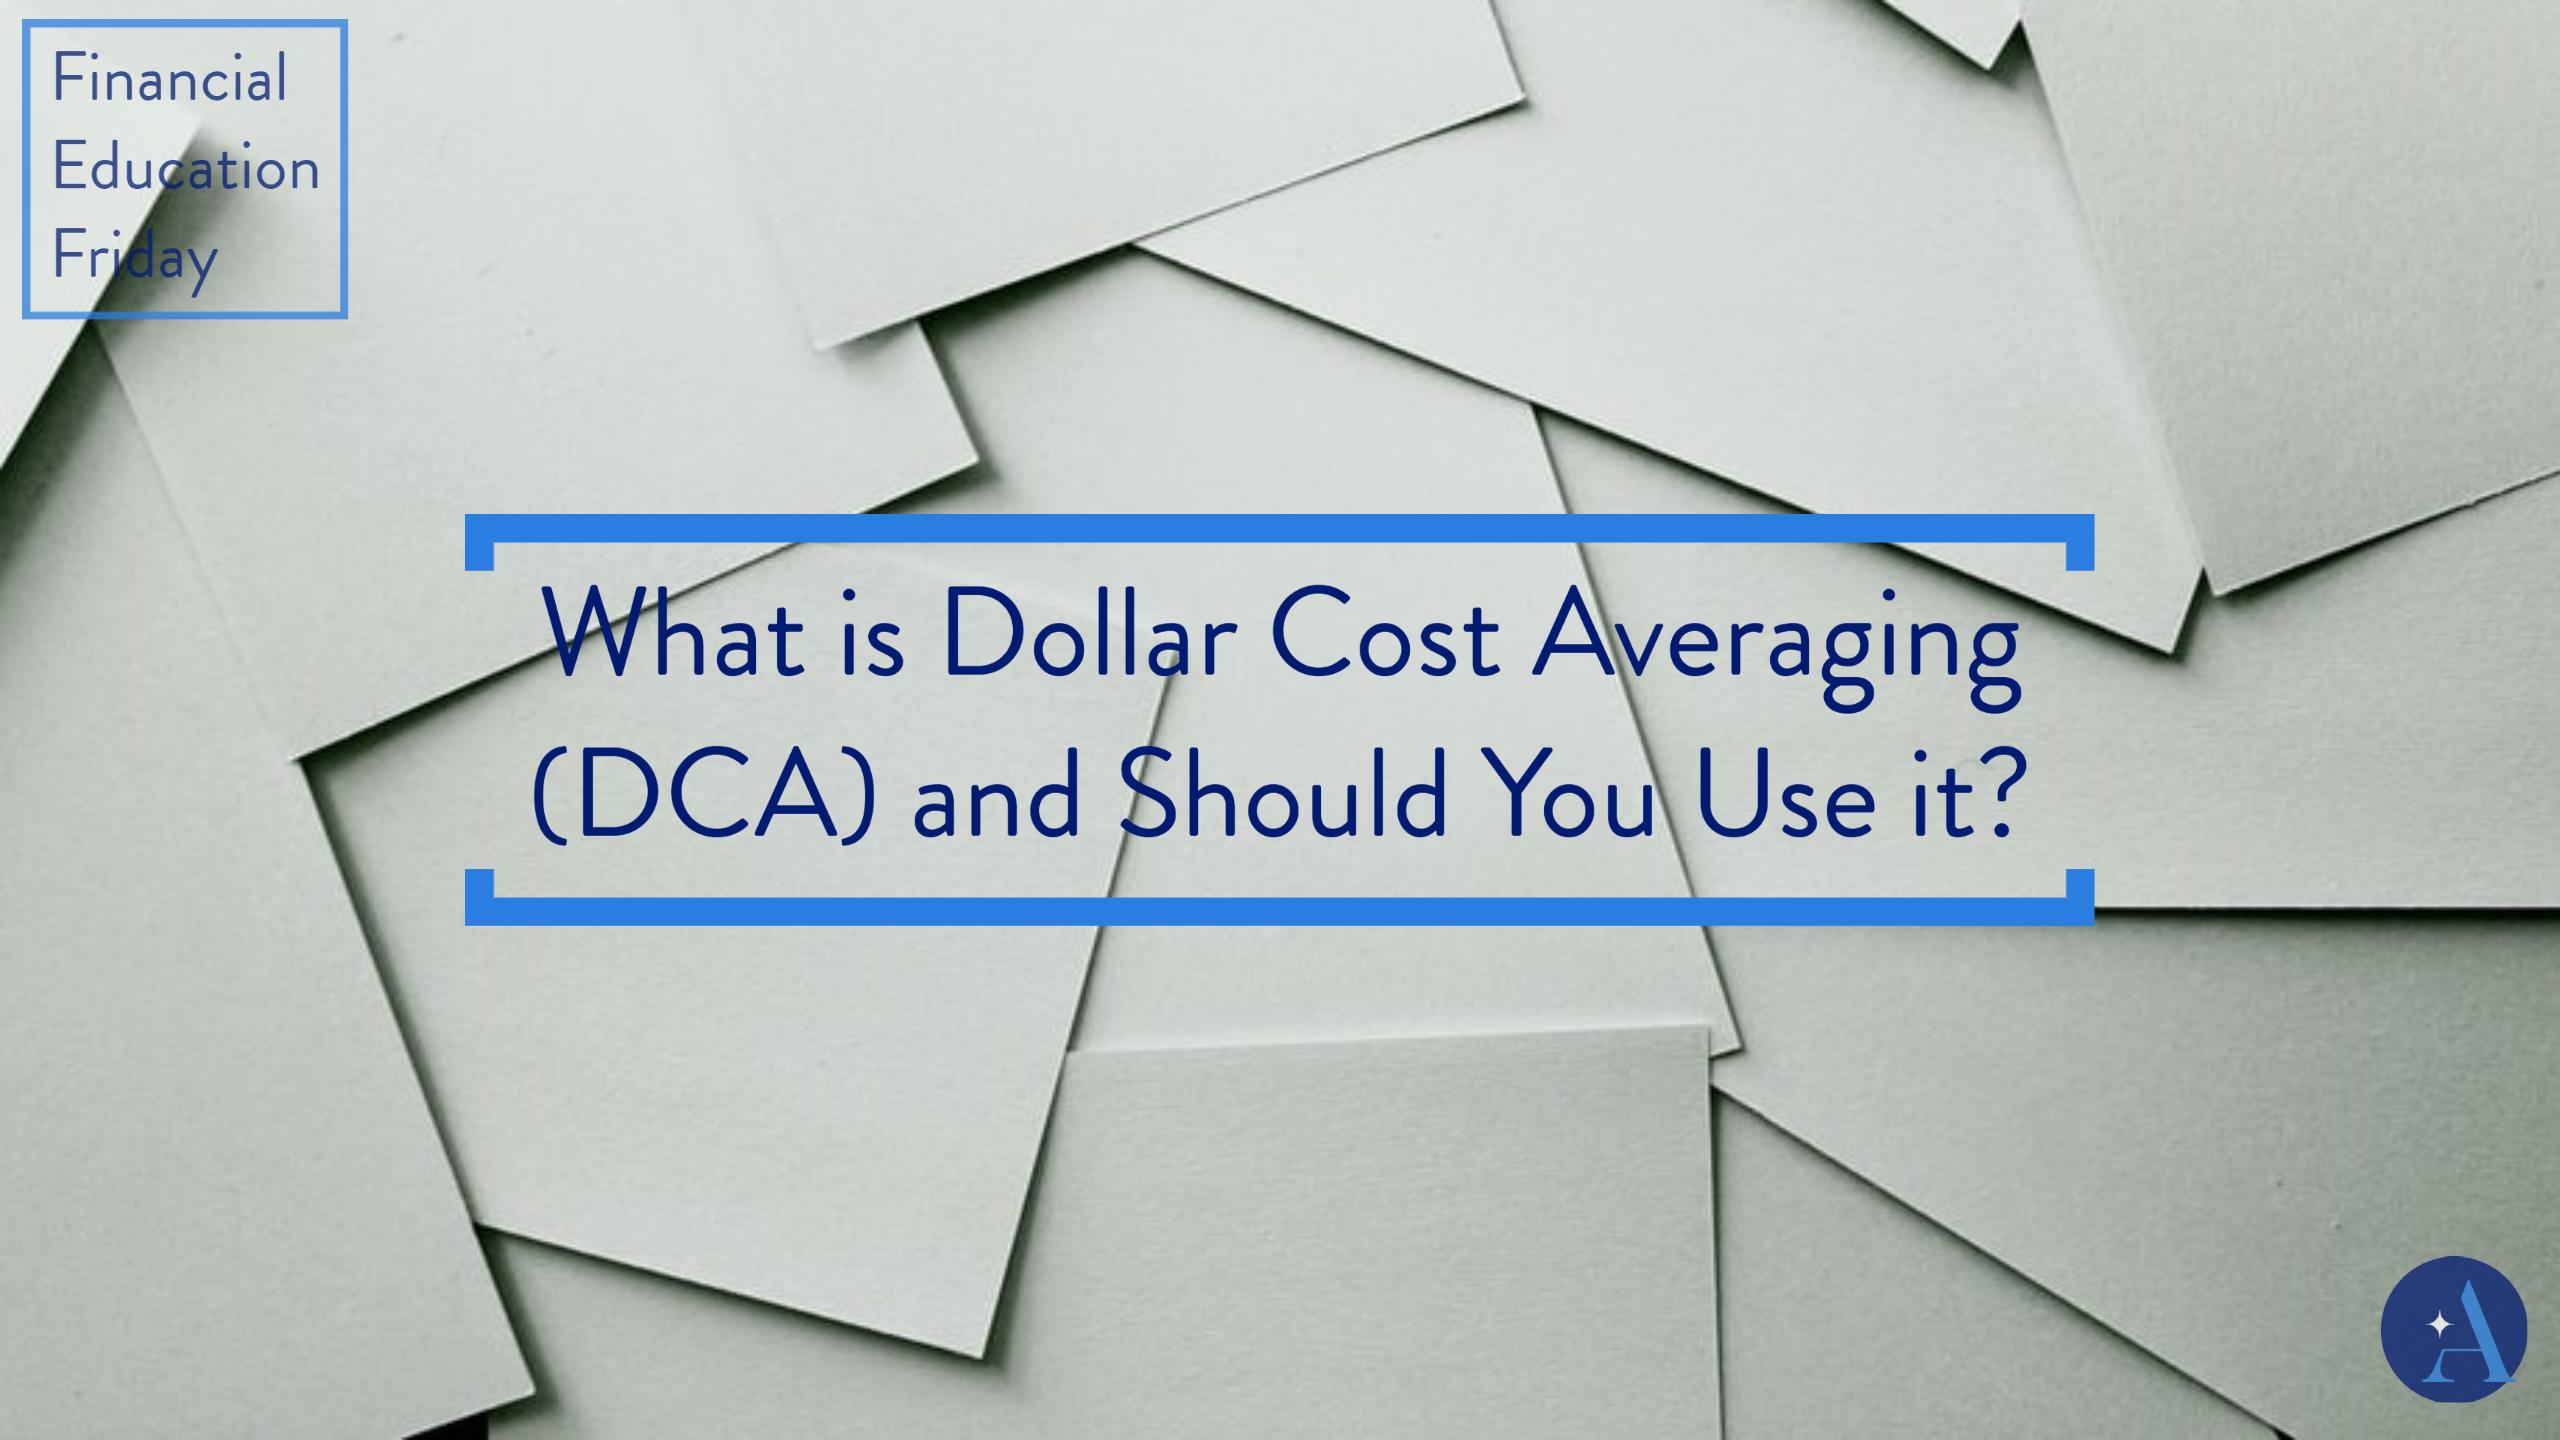 FinEdFriday: What is Dollar Cost Averaging (DCA) and Should You Use it? Thumbnail